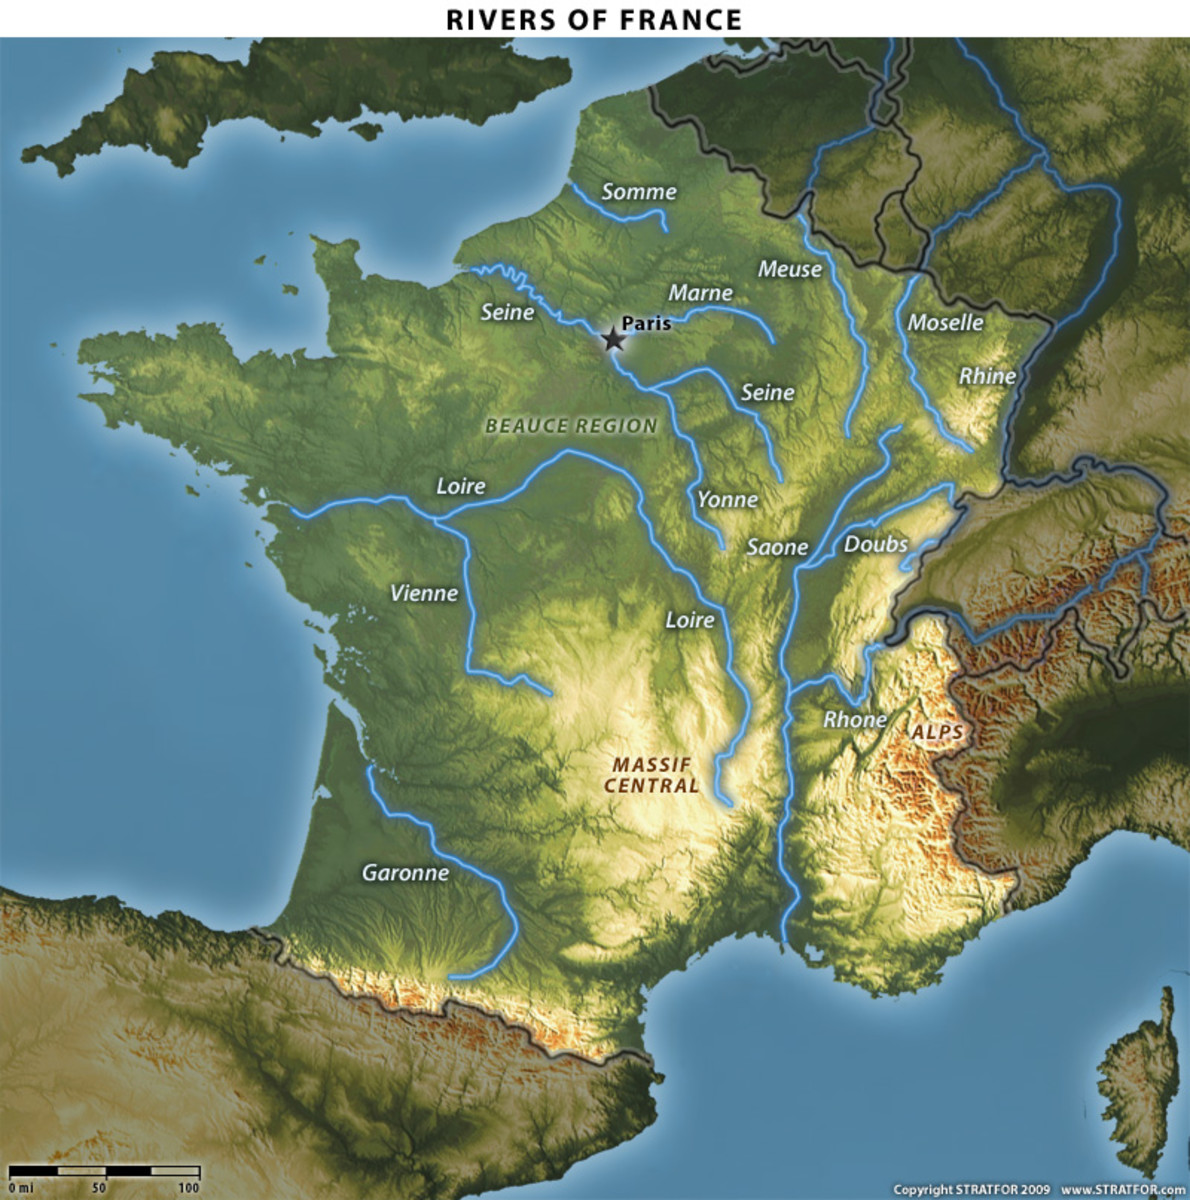 The riverways of the Frankish kingdoms in the 9th Century brought in more than trade. Norsemen sought to enrich themselves at the expense of the hapless Frankish kings